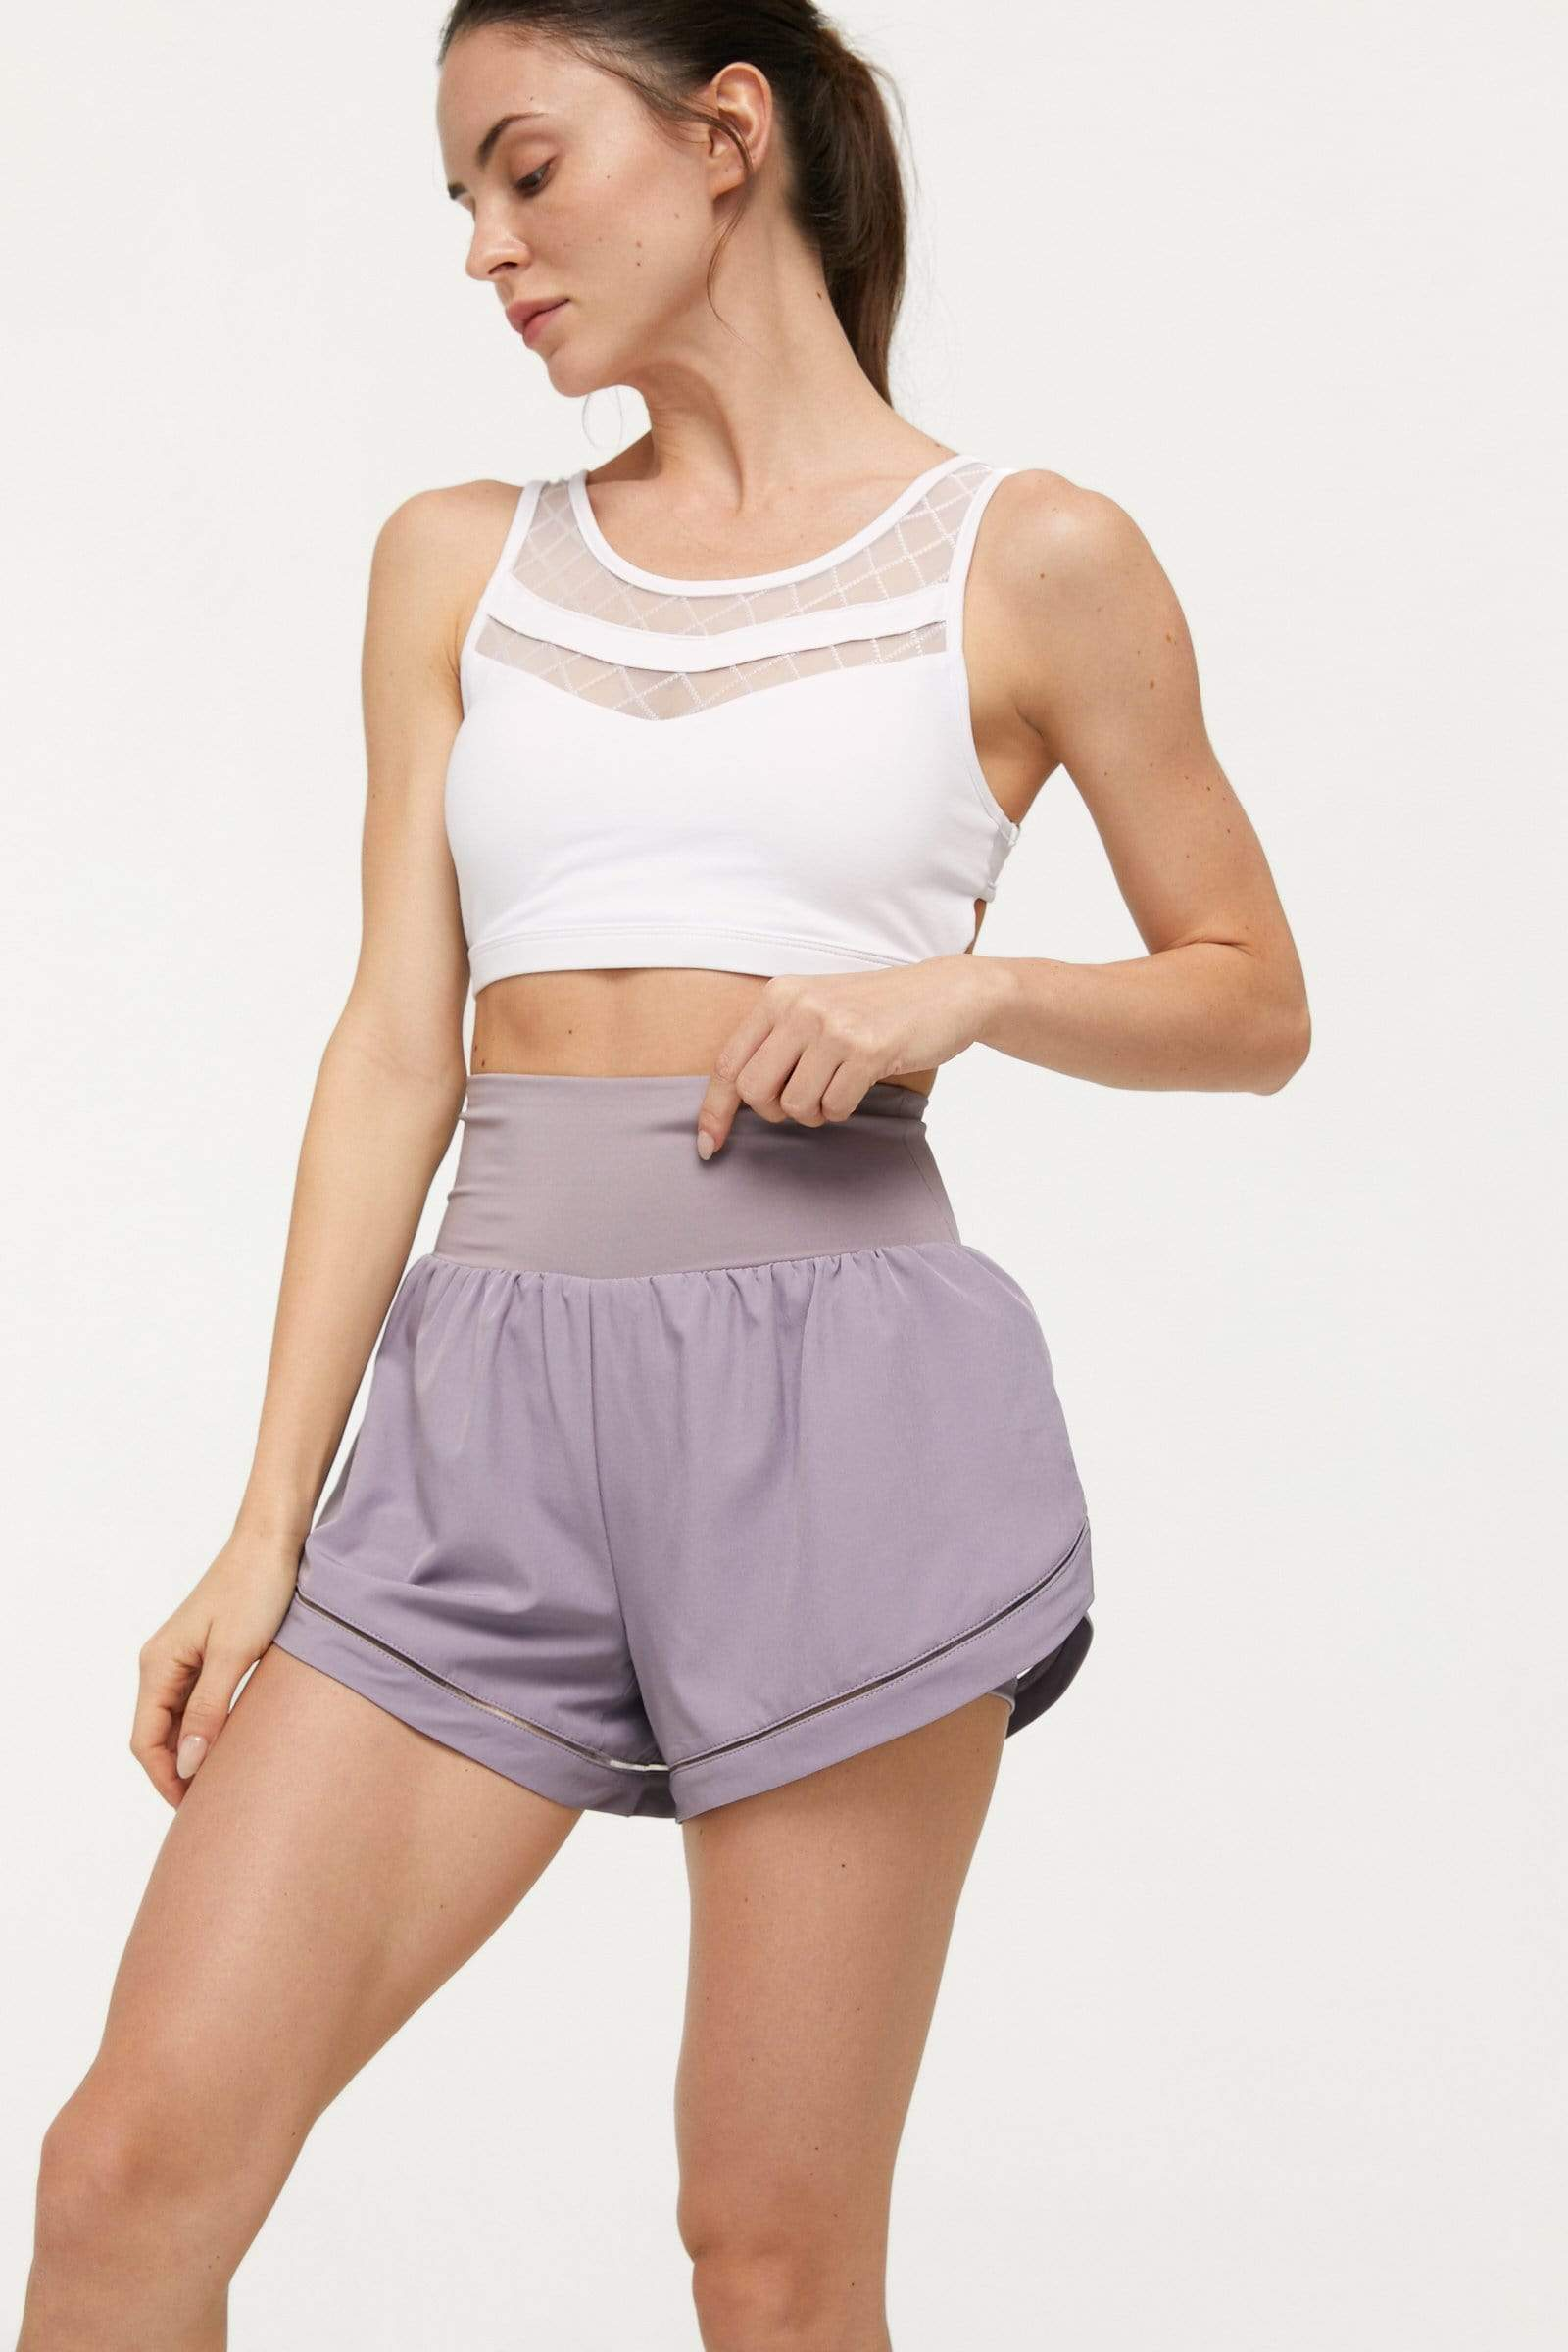 Honeysuckle Lavender Running Shorts